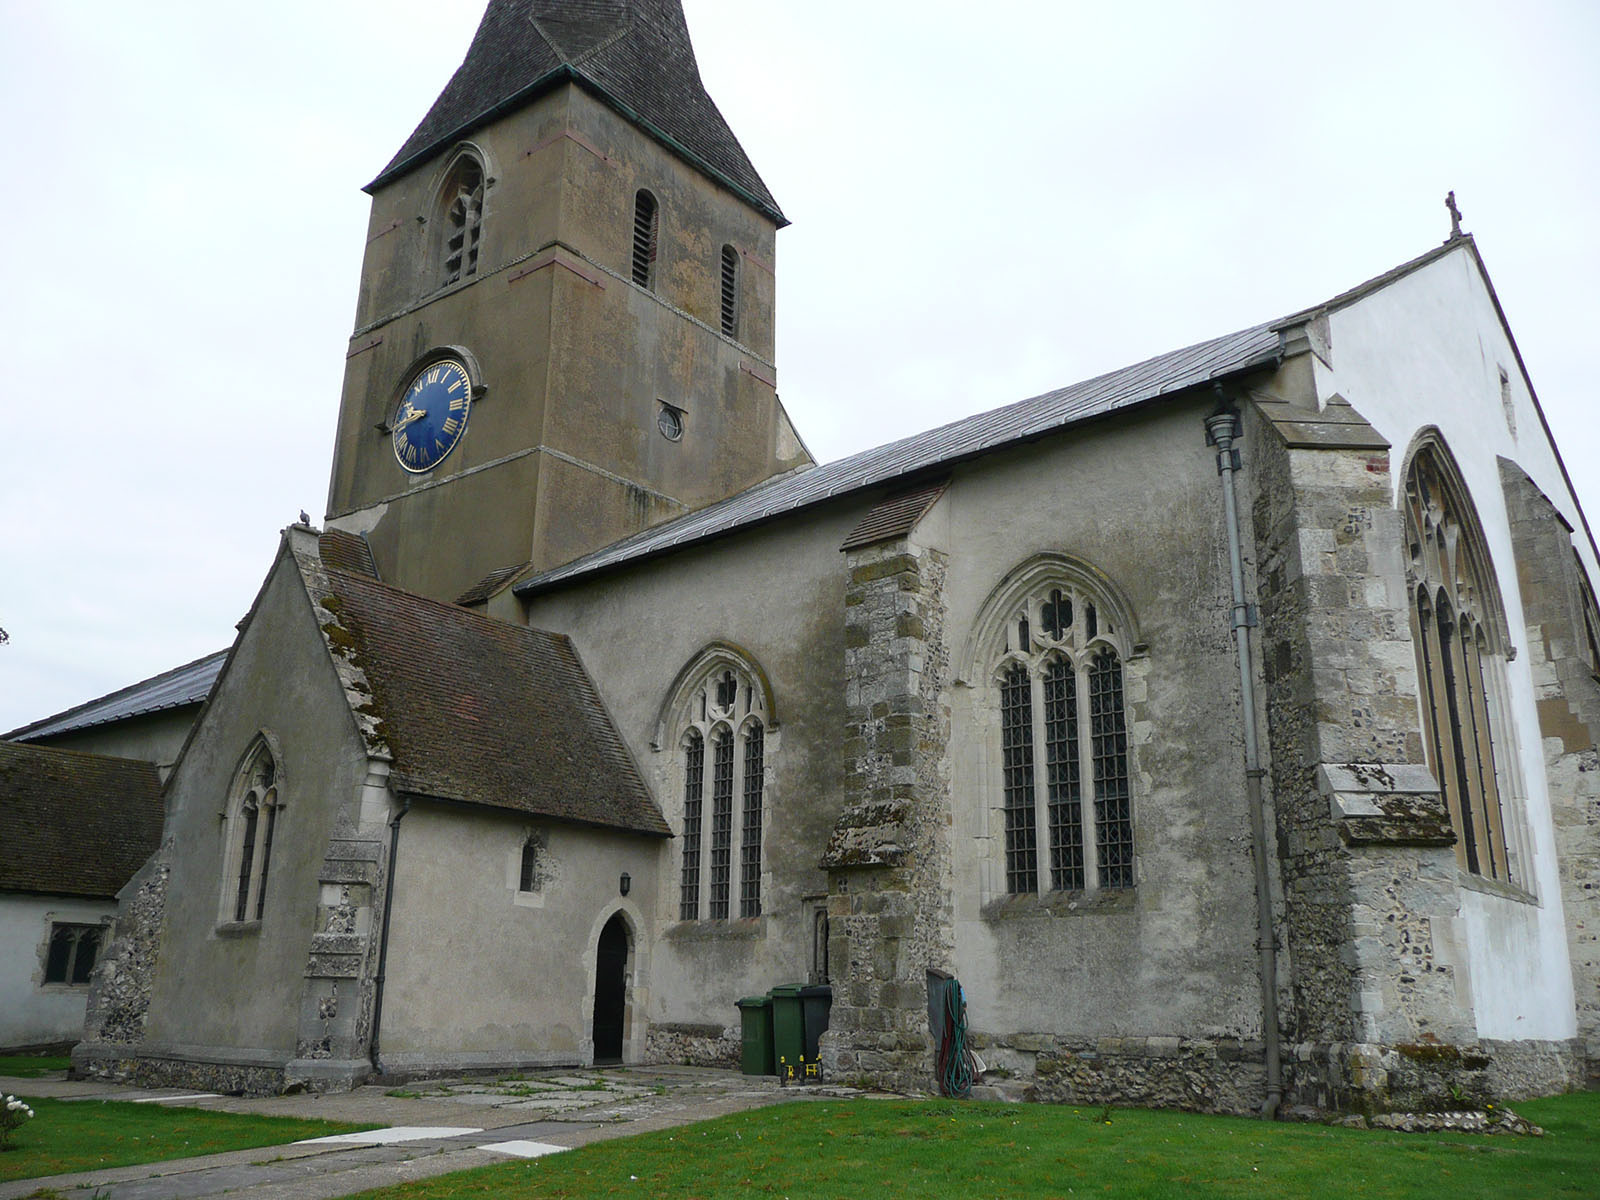 The Church of St Lawrence.